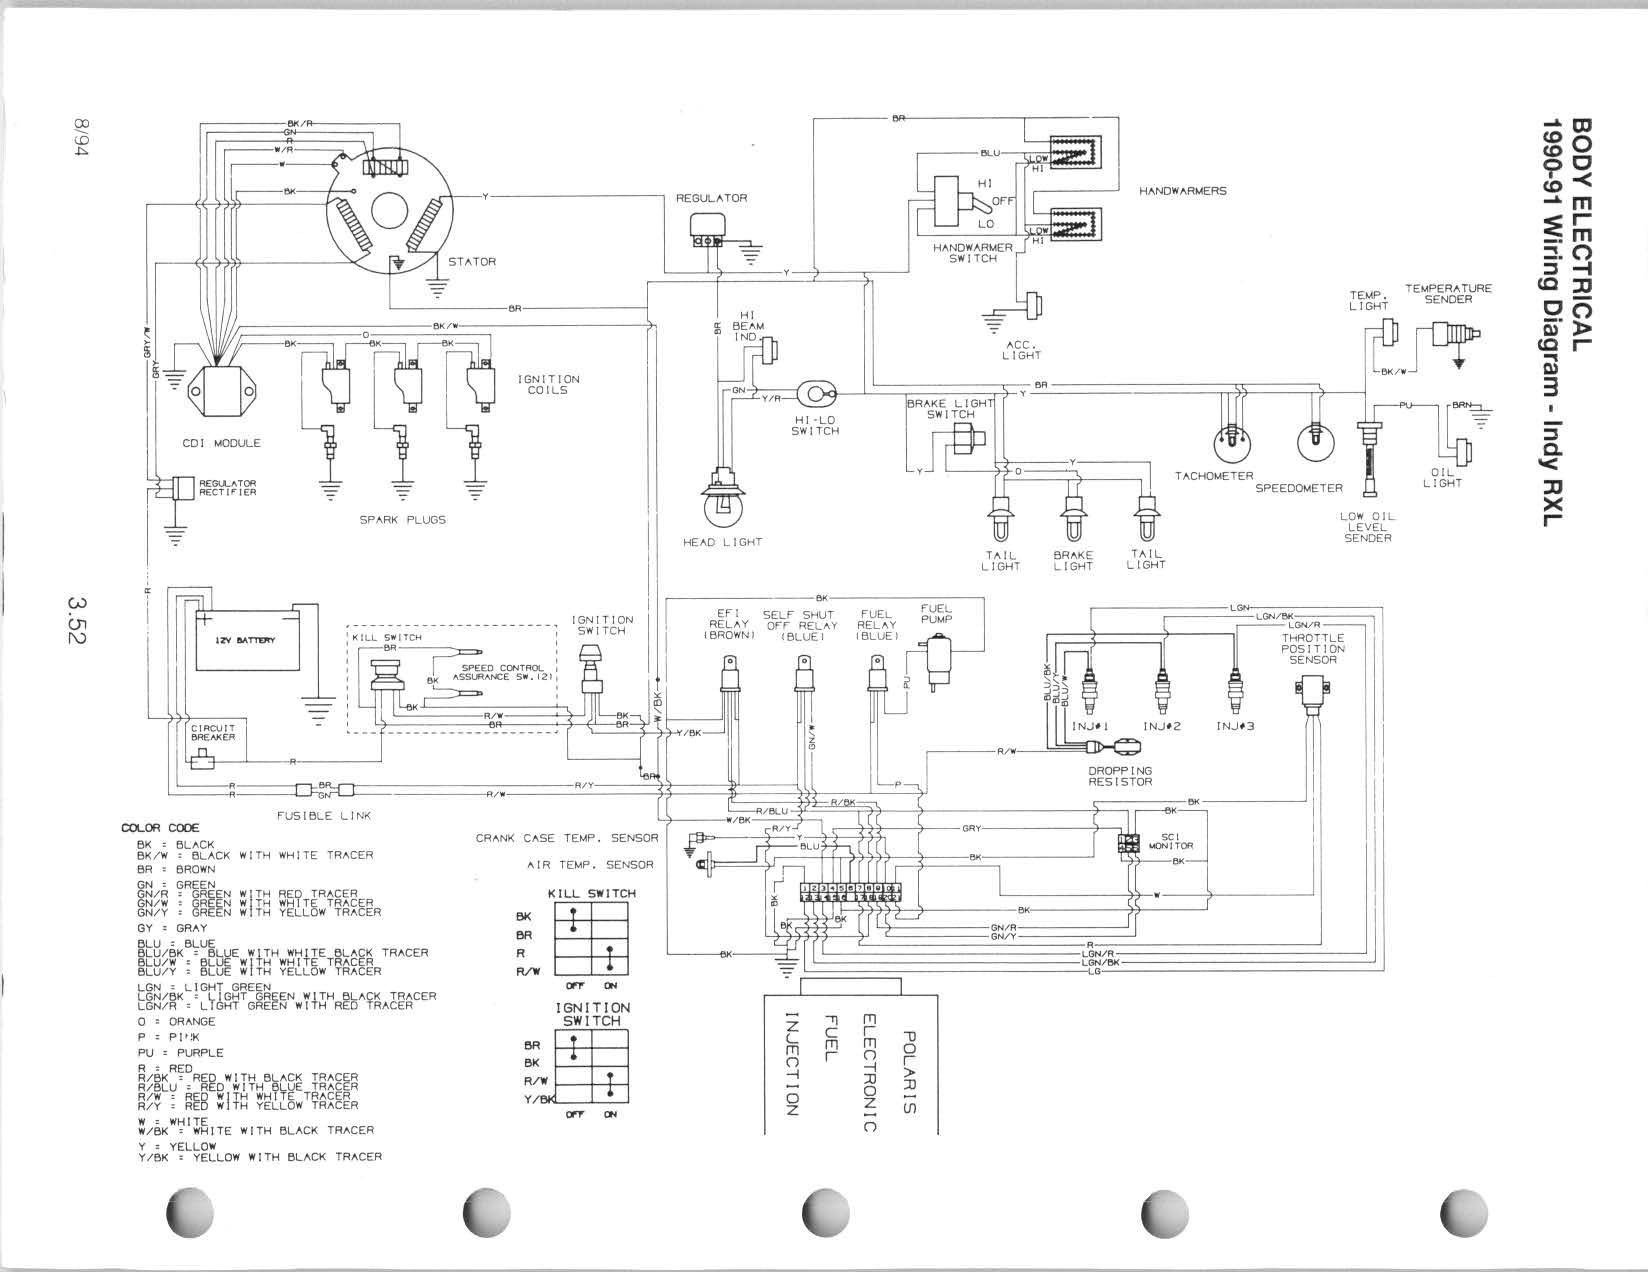 polaris sportsman 700 wiring diagram get free image about wiring diagram